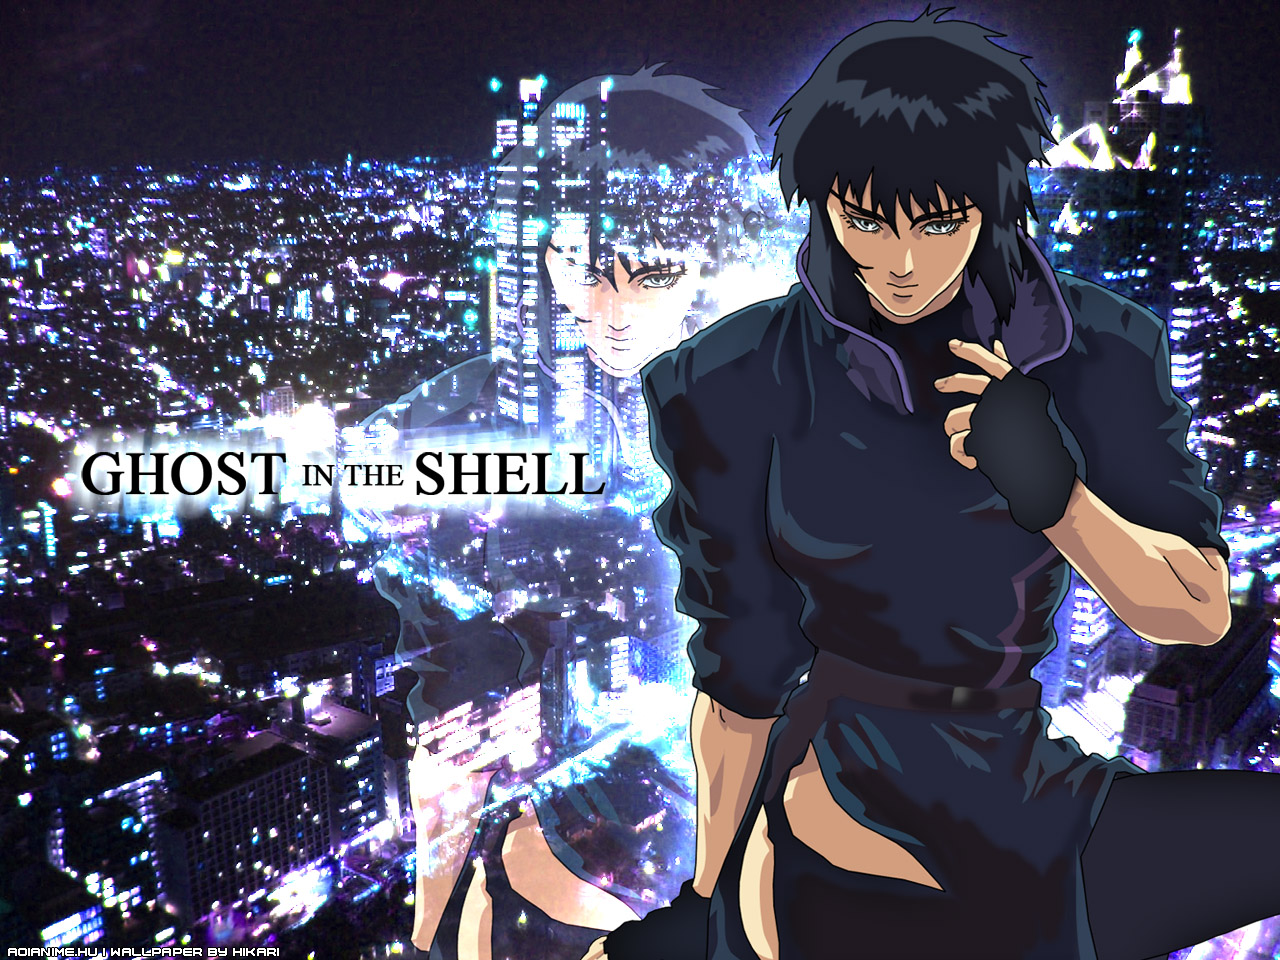 A Blog About Movies: Ghost in the Shell